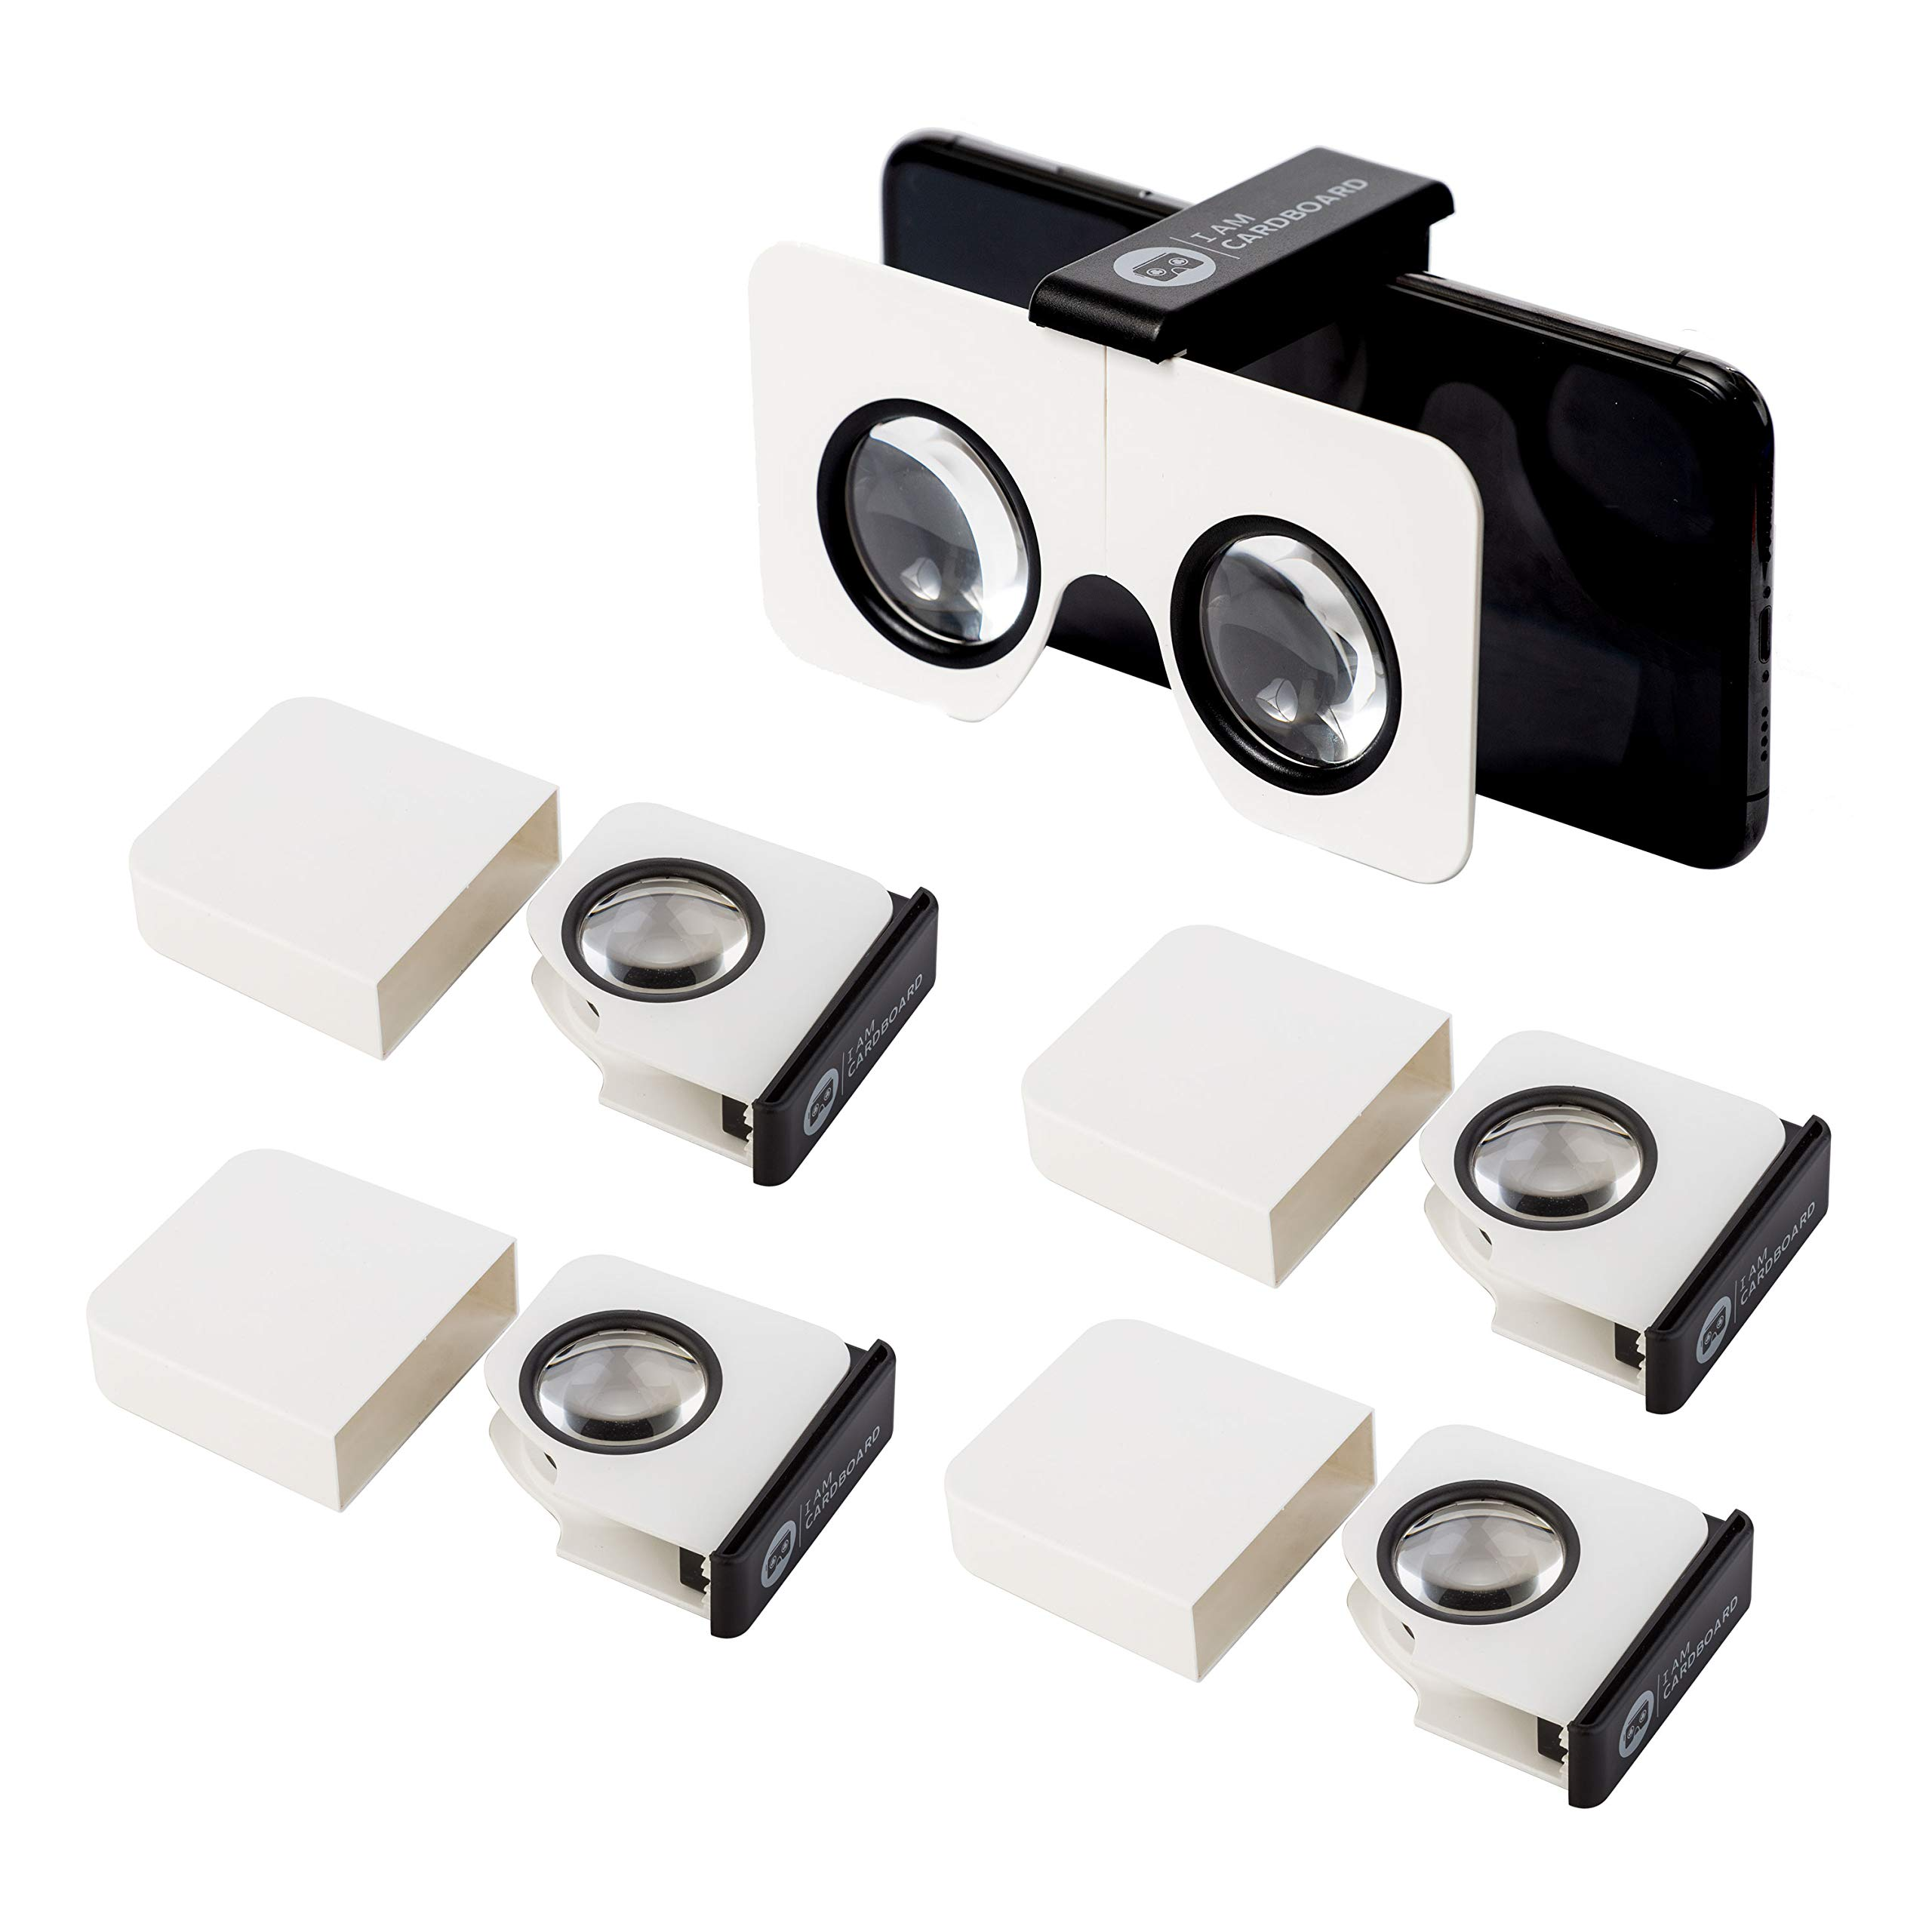 Five-Pack Pocket 360 Mini VR Viewer | The Best Google Cardboard Virtual Reality Glasses | Google Cardboard v2 Inspired | Small and Unique Travel Gift Pack of 5 by I AM CARDBOARD